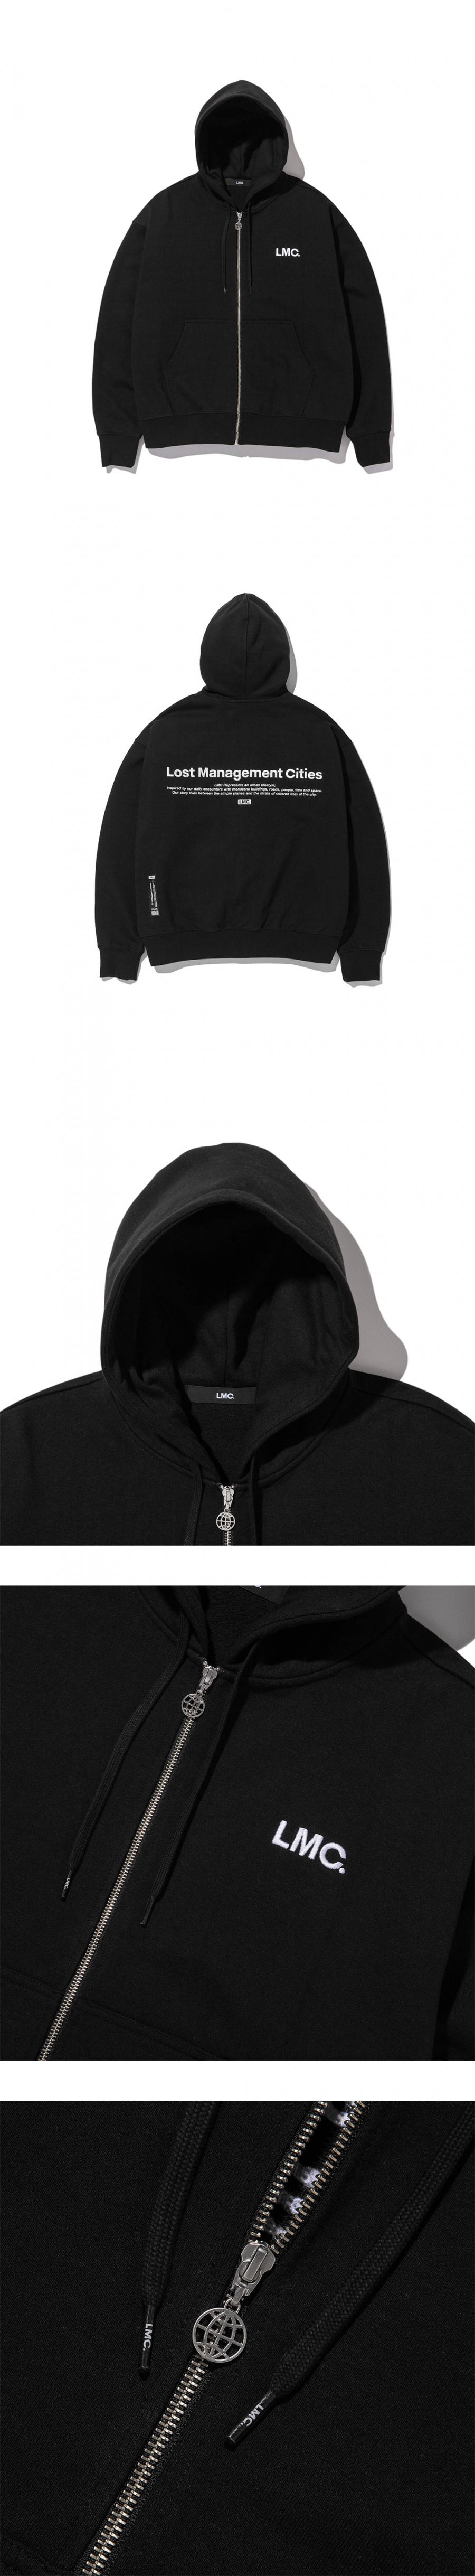 엘엠씨(LMC) LMC OG LOGO ZIP-UP HOODIE black